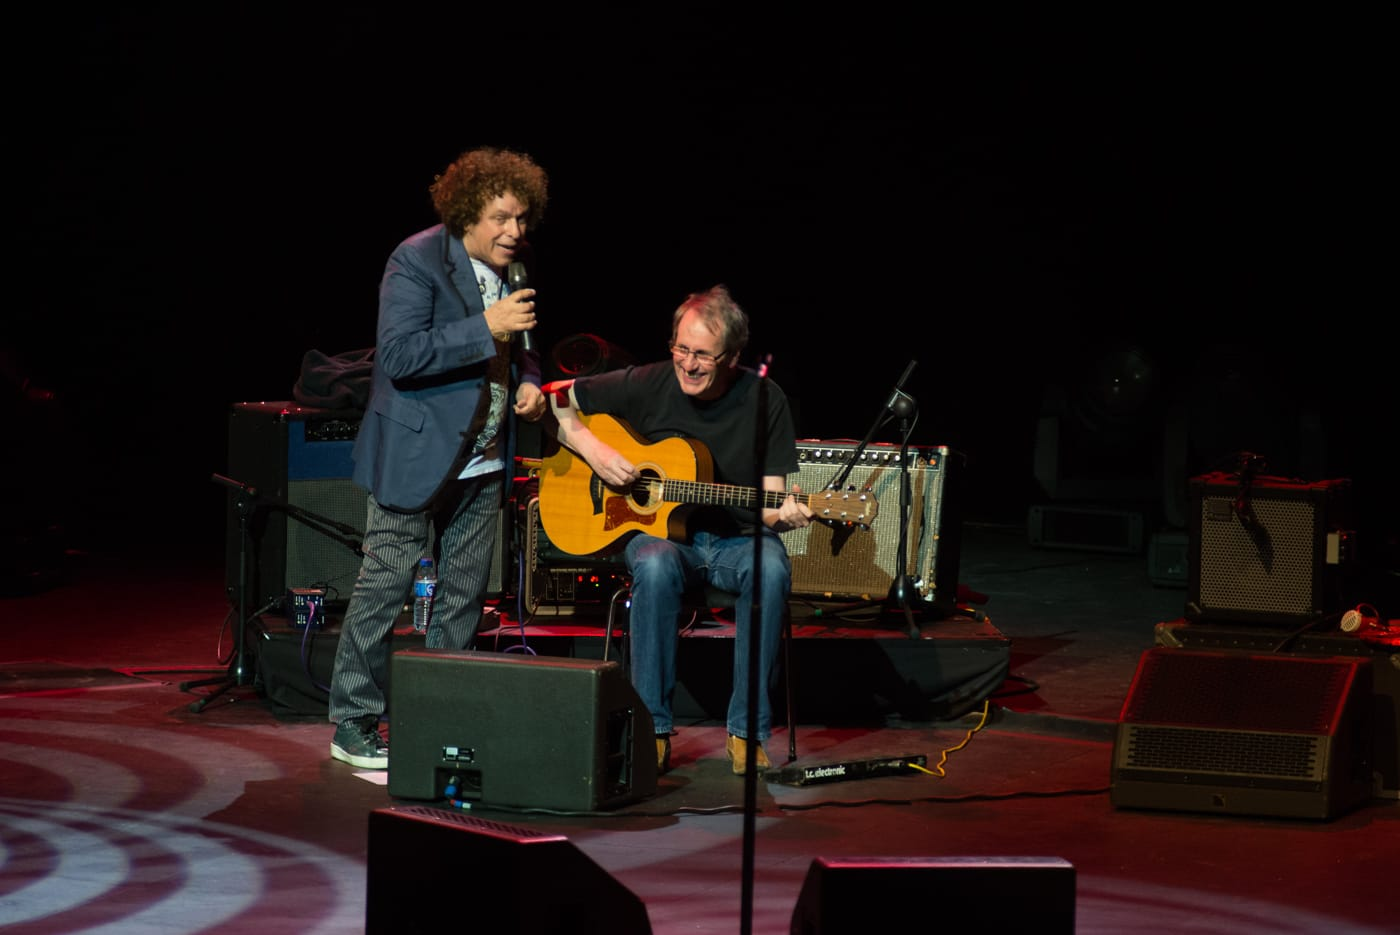 Leo Sayer at Bord Gais Energy Theatre by Sean Smyth (16-10-15) (40 of 129)